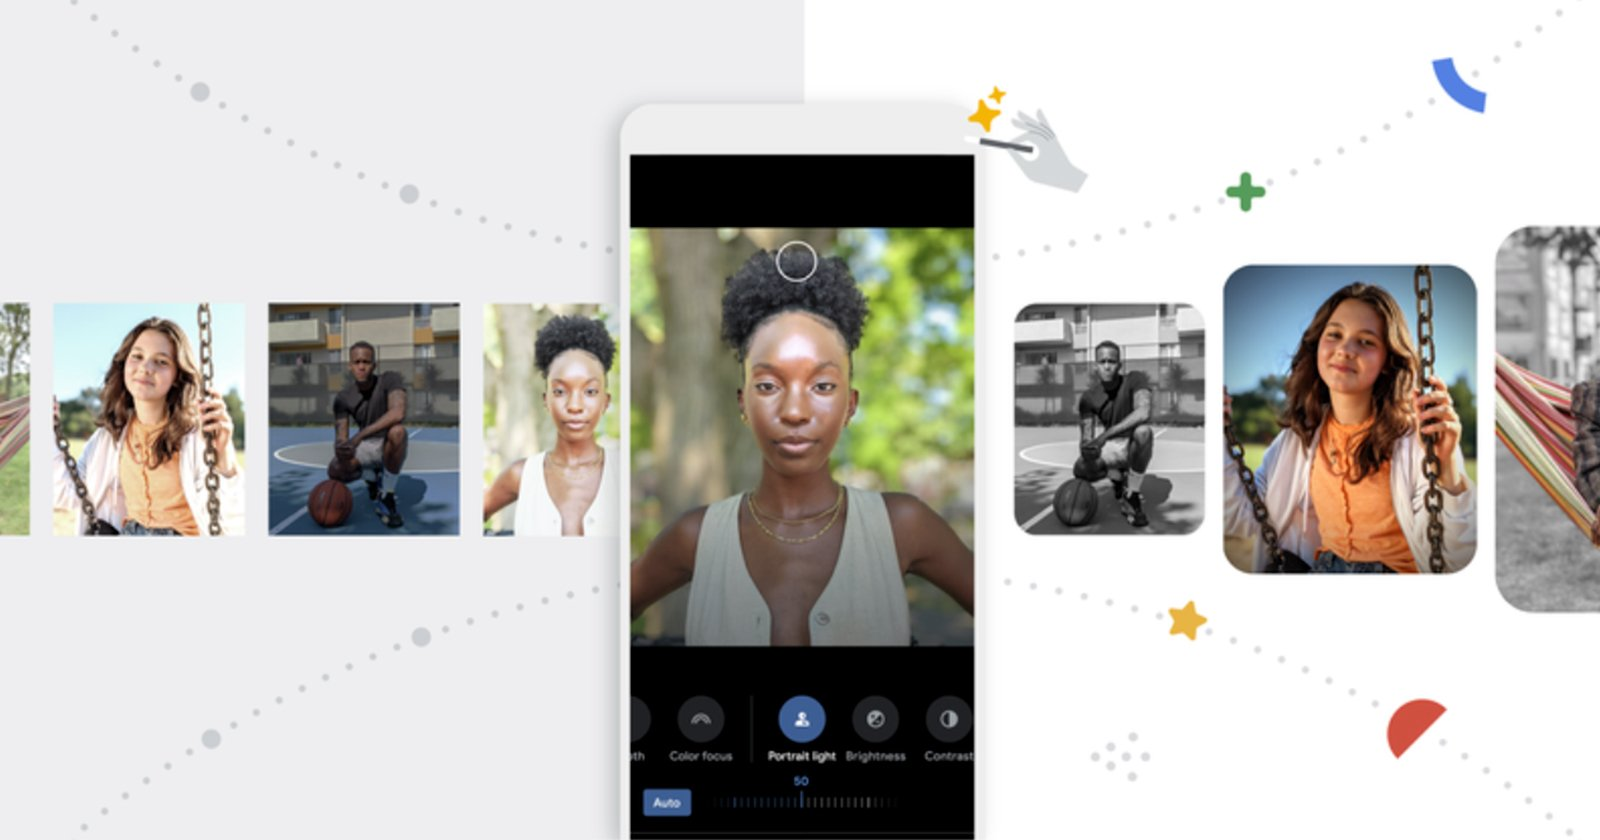 Google Photos Gets AI 'Portrait Light' Tool and One-Tap Edits